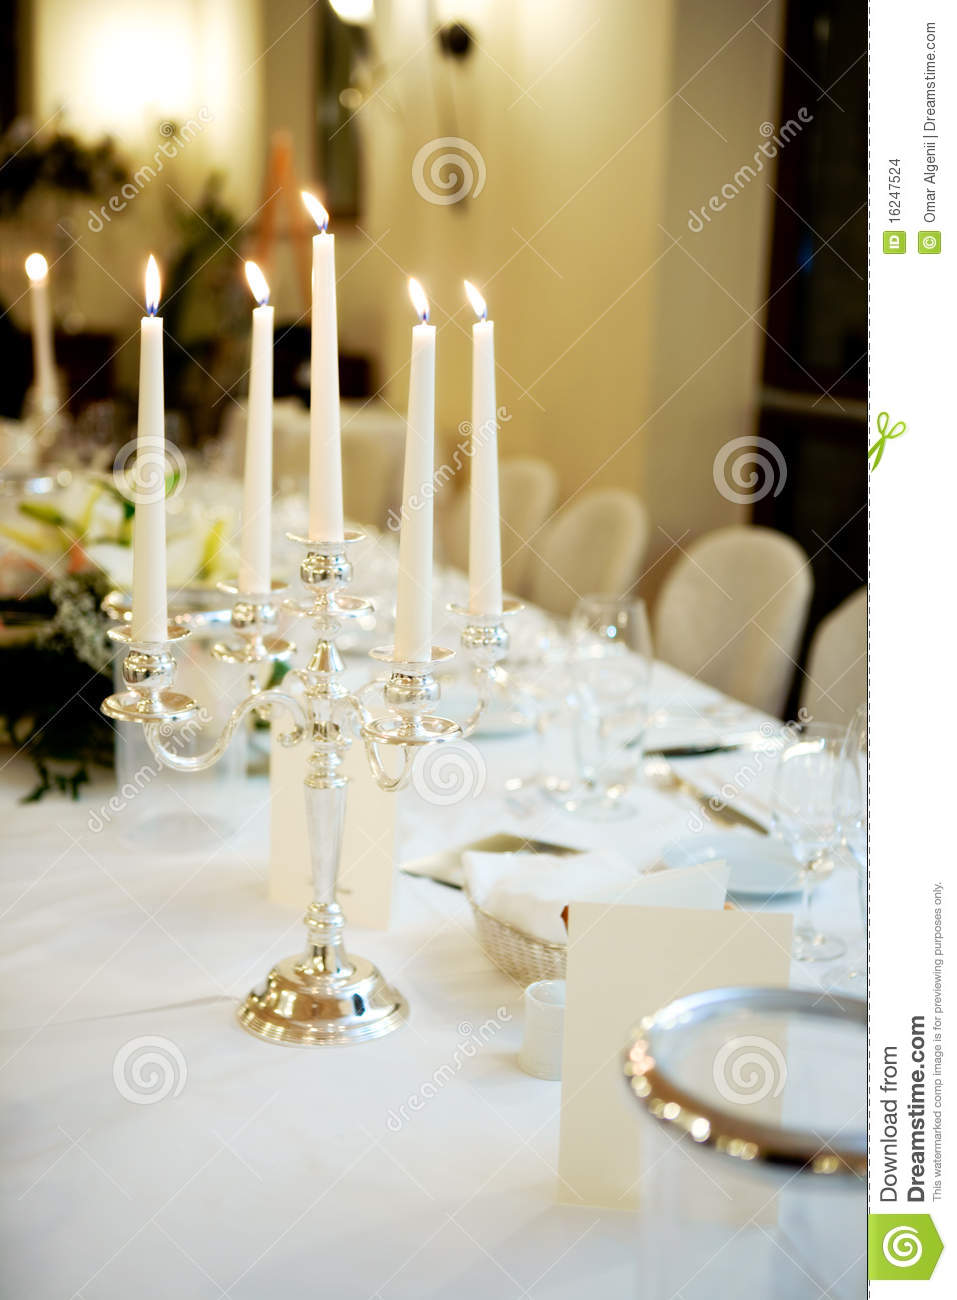 Table romantique images stock image 16247524 for Table romantique